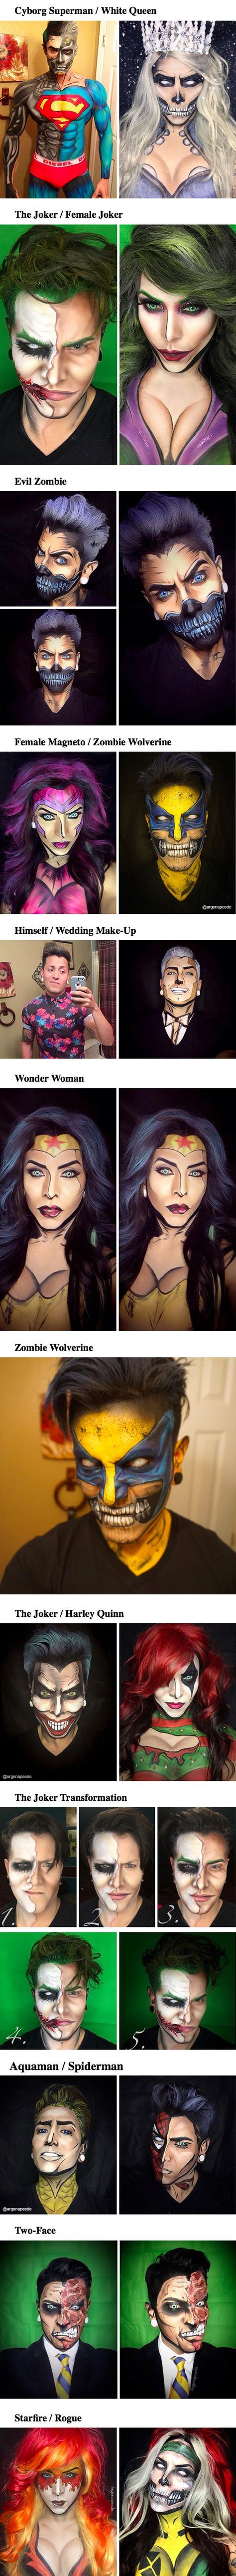 Argenis Pinal, a makeup artist based in Temecula, California, doesn't need a costume to look like a superhero – he uses his fantastic makeup and body paint skills to change his entire appearance. With the right lines and colors, he can become a zombie Wolverine, cyborg Superman, or any one of hundreds of other cool remixed superheroes that he loves to paint on himself.